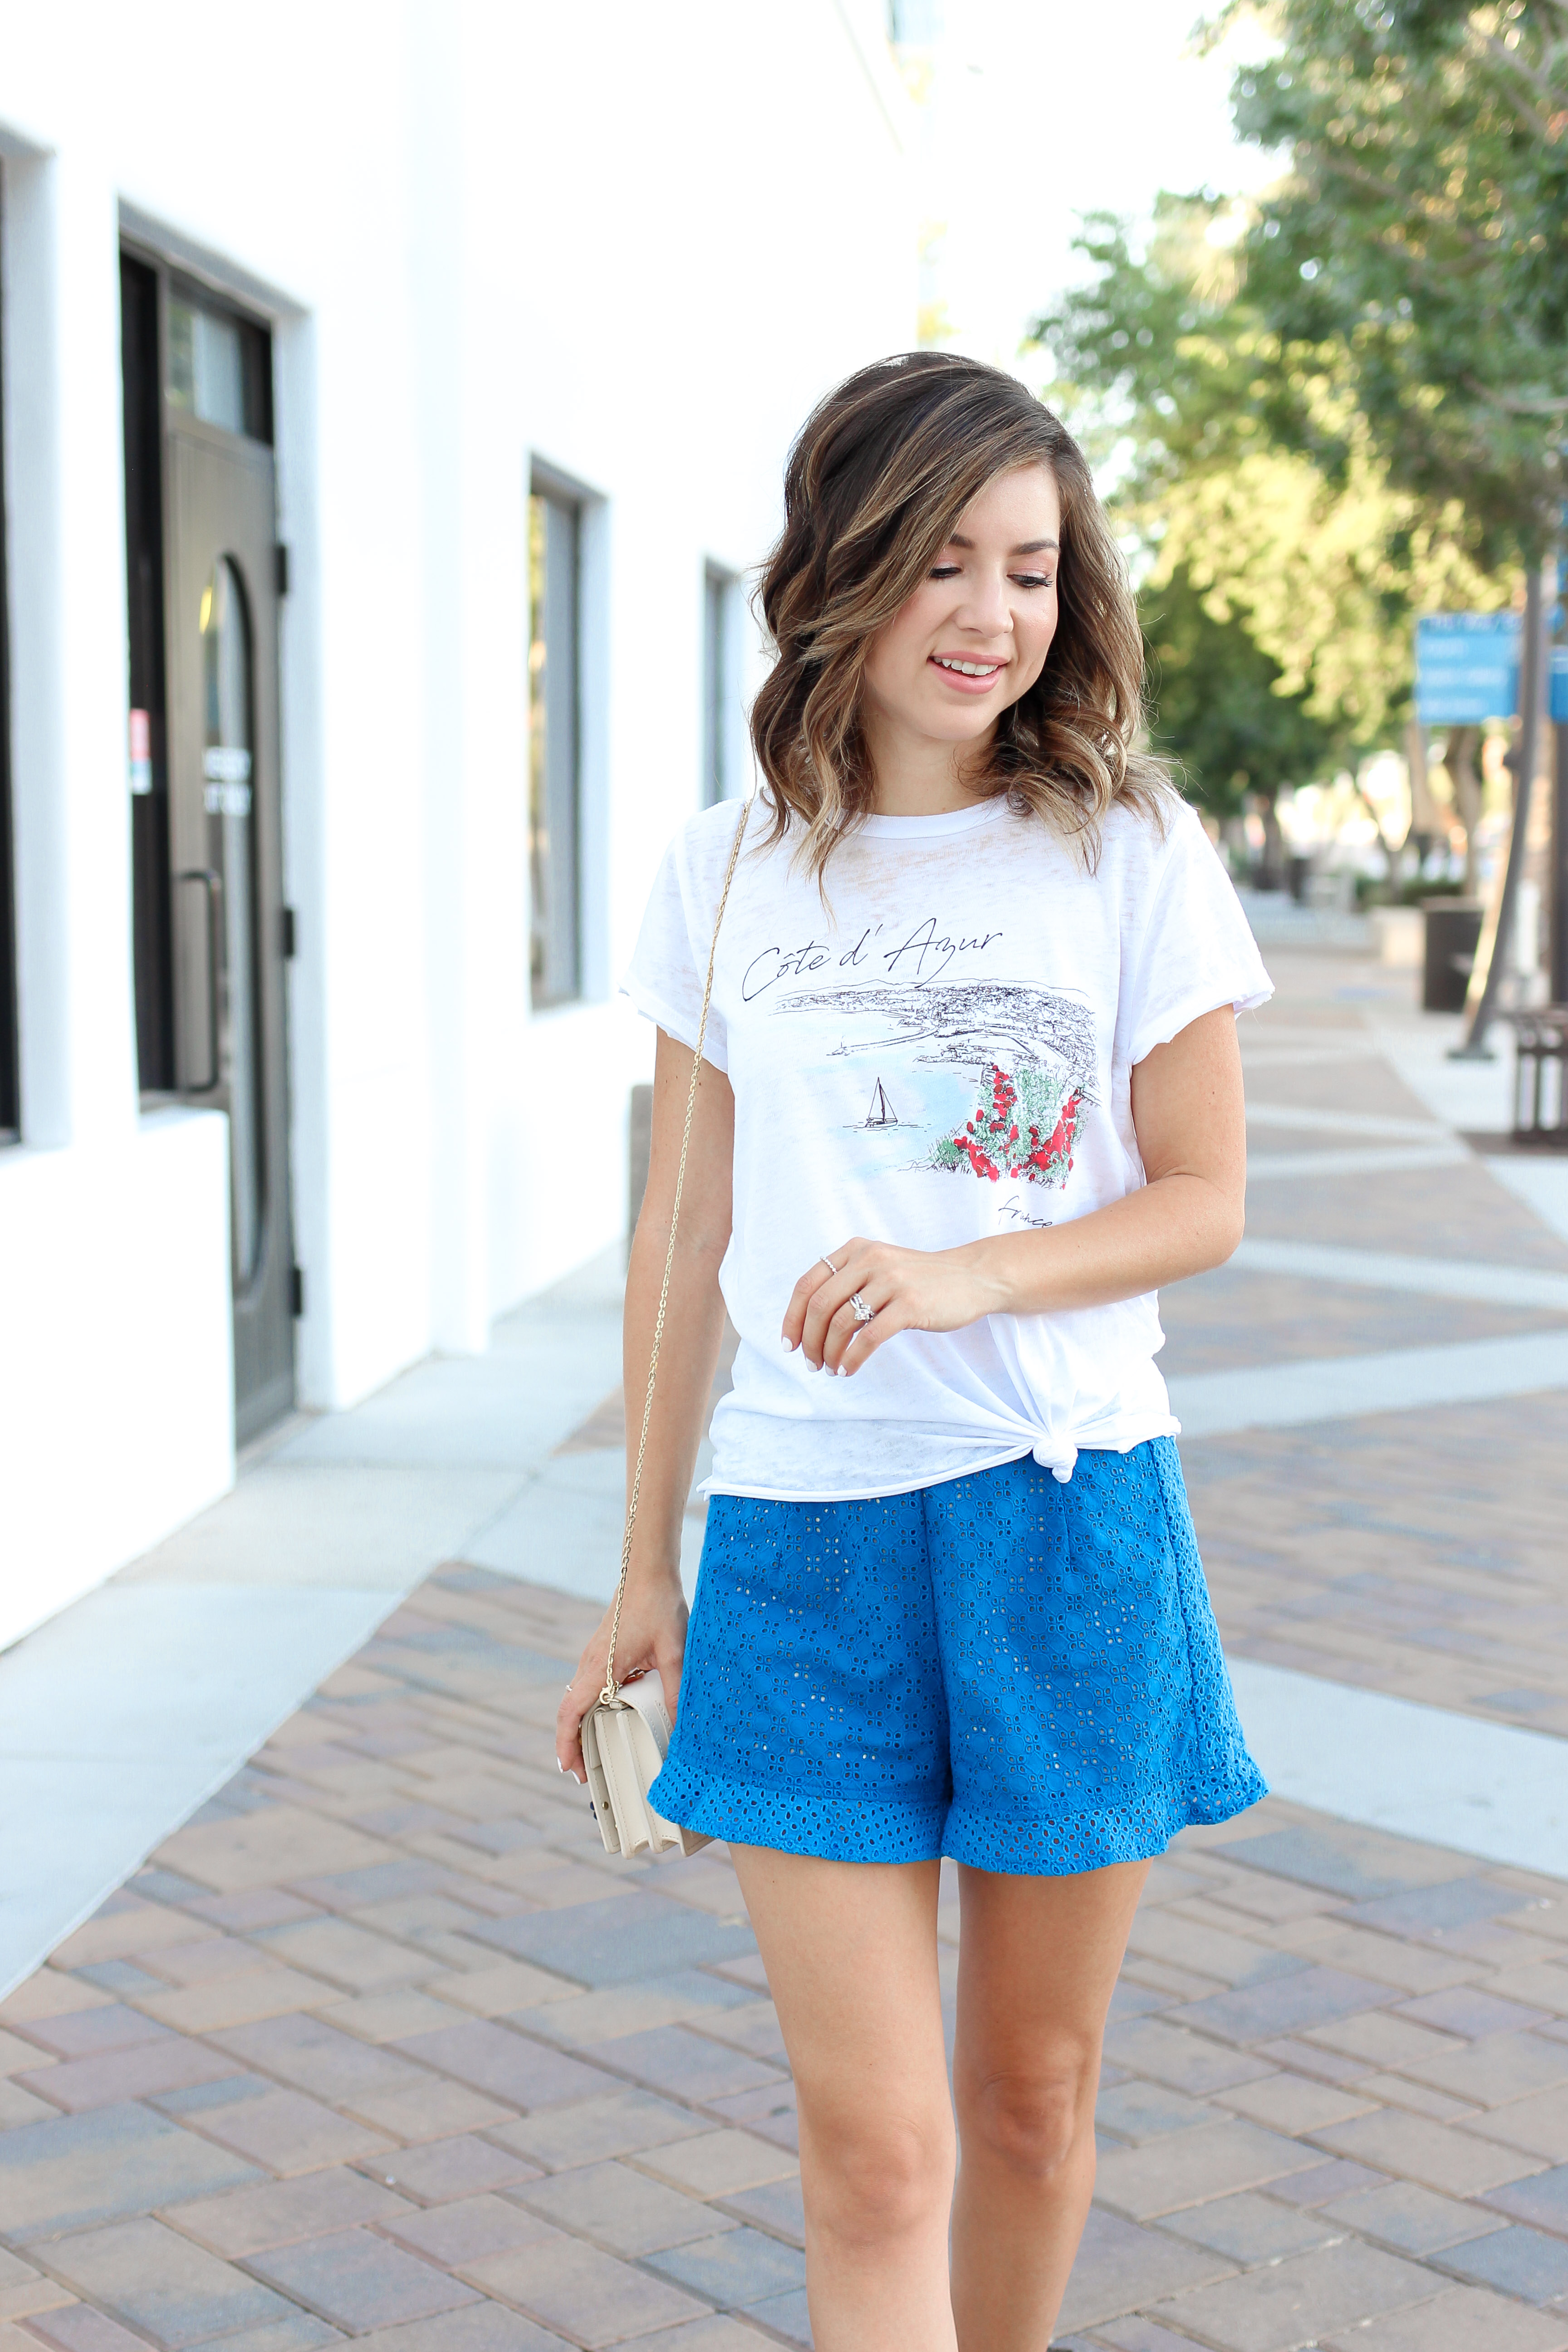 Simply Sutter - Casual Summer outfit - shorts outfit - french tee